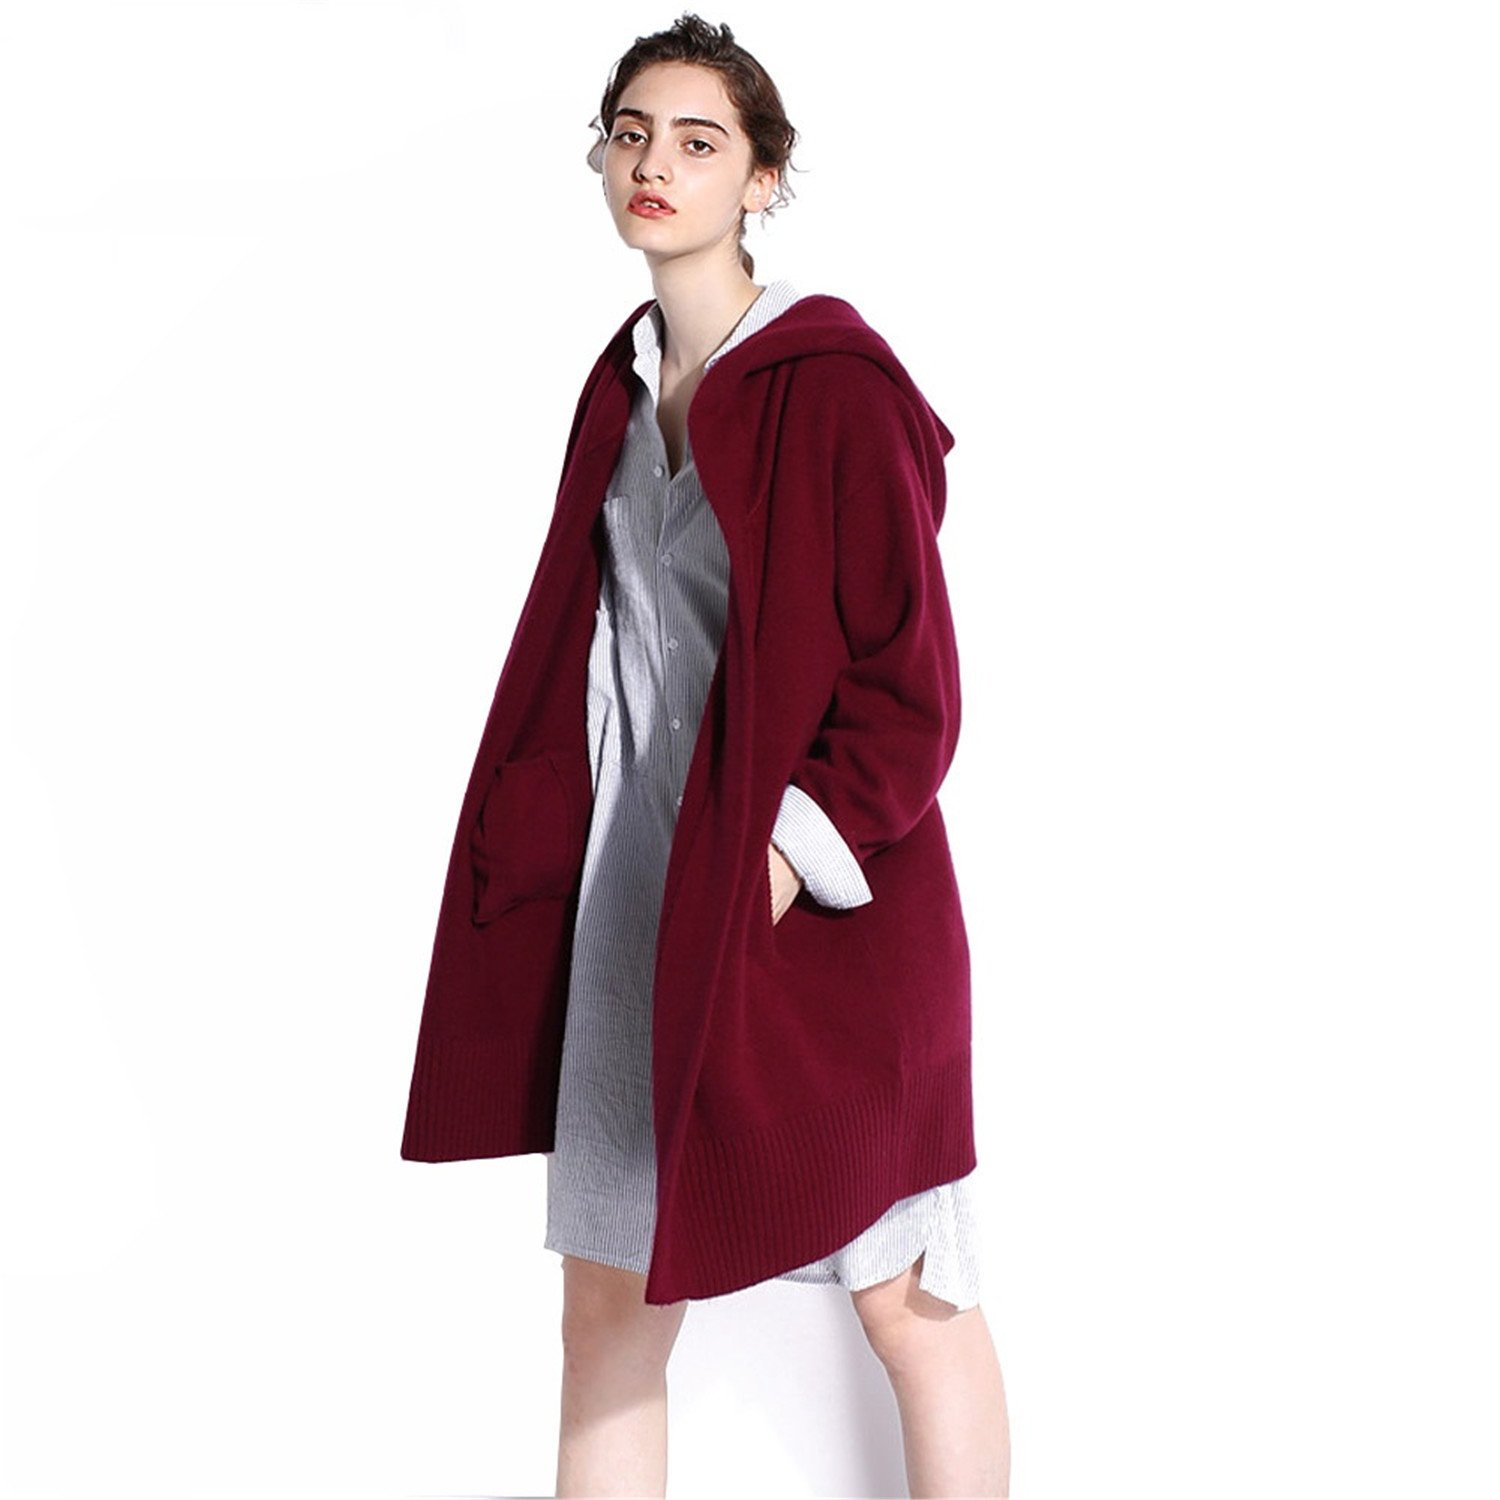 Gome-z Chic Spring Autumn 100% Pure Cashmere Open Stitch Hooded Cardigans Fluffy Sweater Outwear Clothing Burgundy L